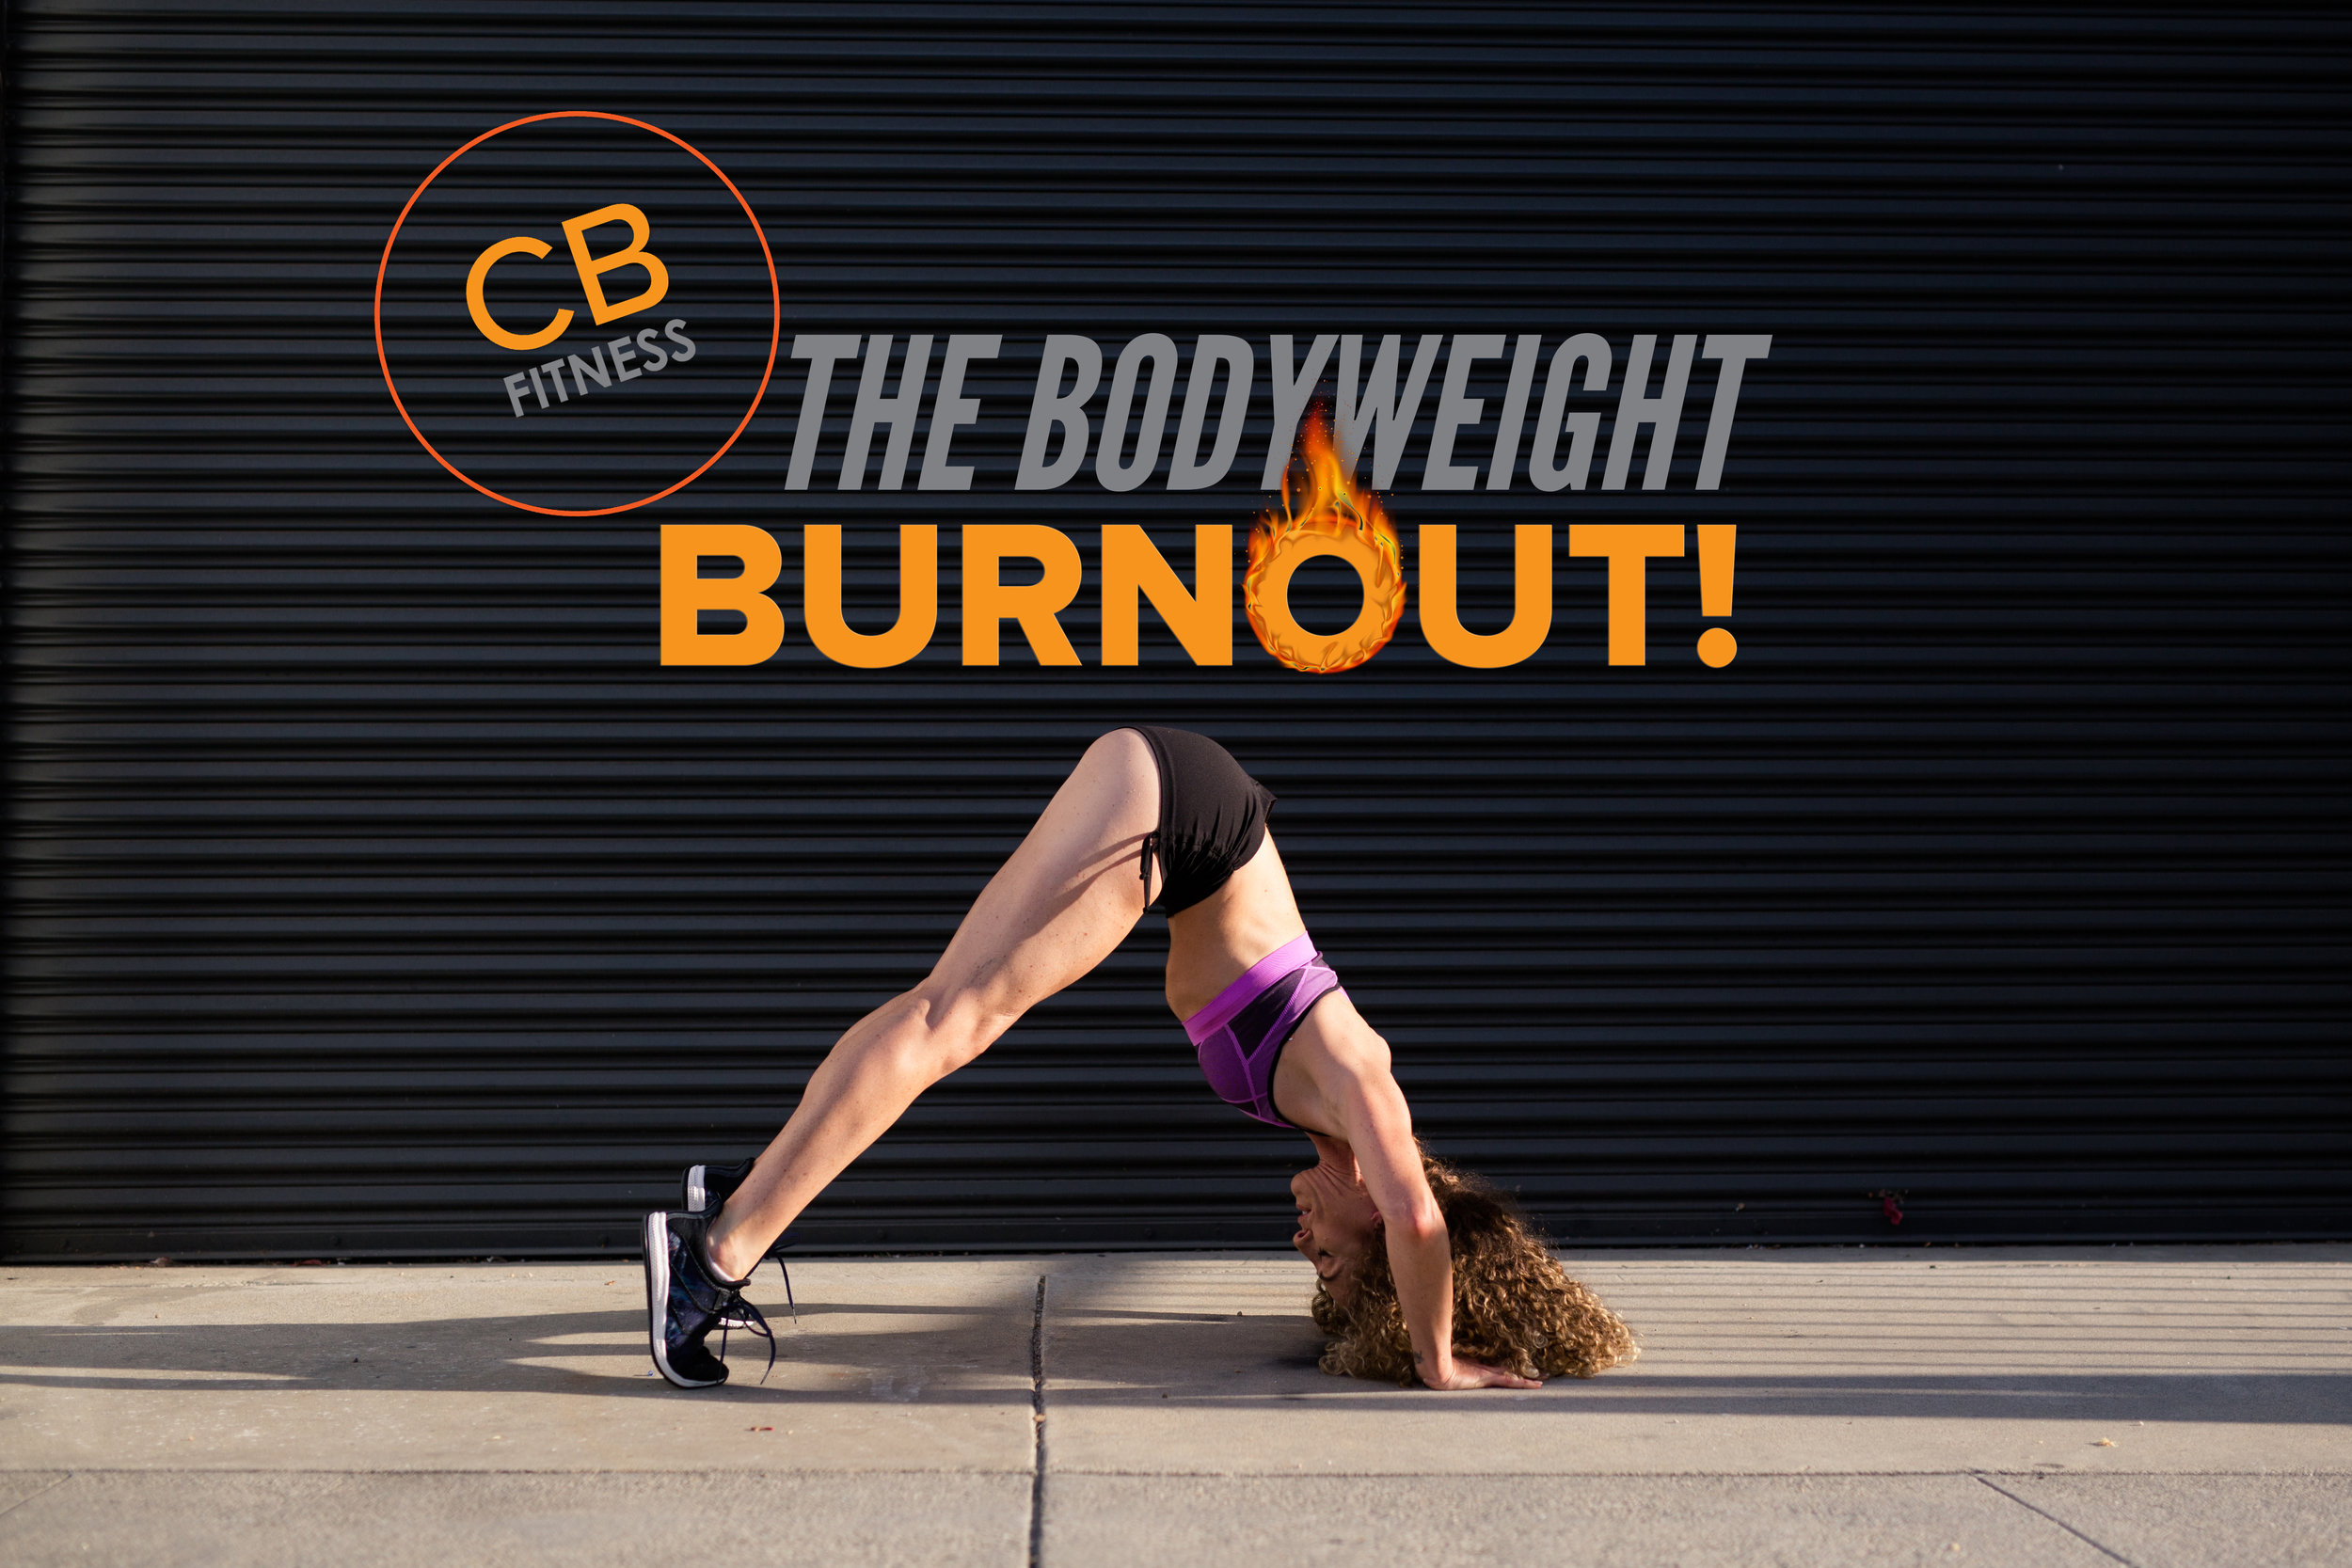 GET STARTED with these QUICK Full Body Cardio Workouts. Get some serious CALORIE BURN with NO EQUIPMENT NECESSARY!